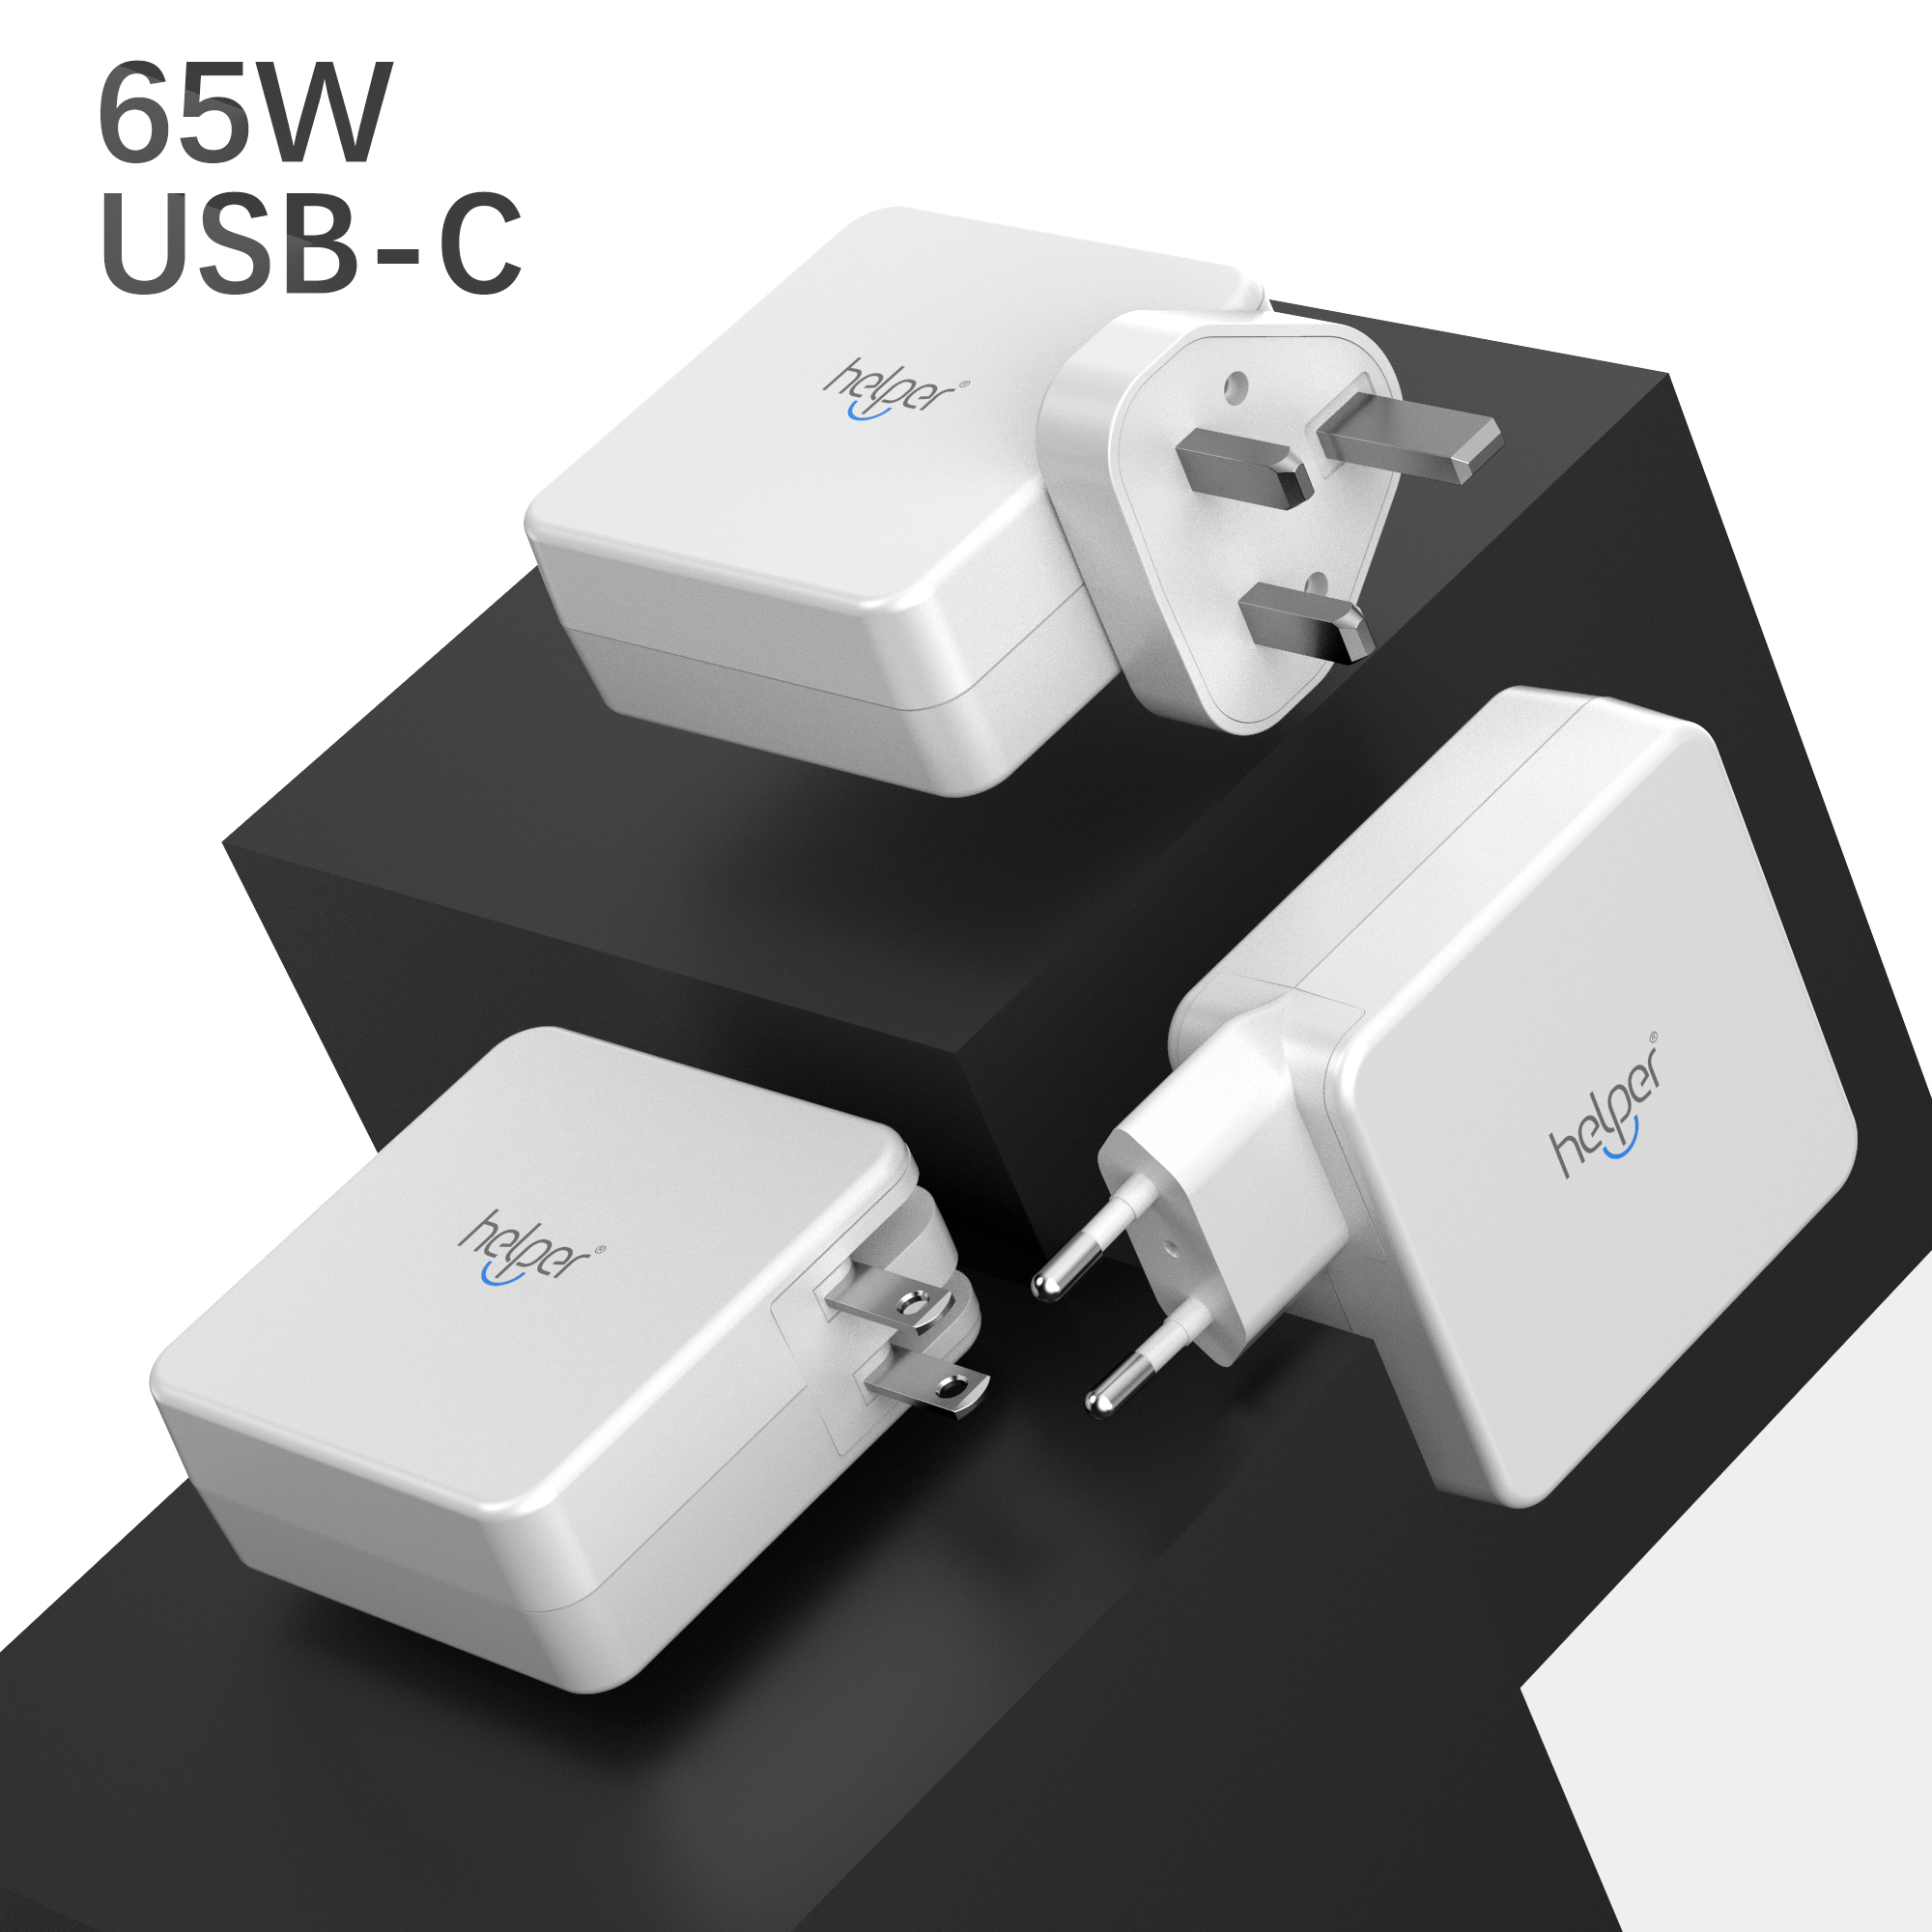 Helper 29W USB Type C Wall Charger Fast Charging Power Adapter for new MacBook HUAWEI MateBook Lumia 950 950XL Nexus 5X 6P